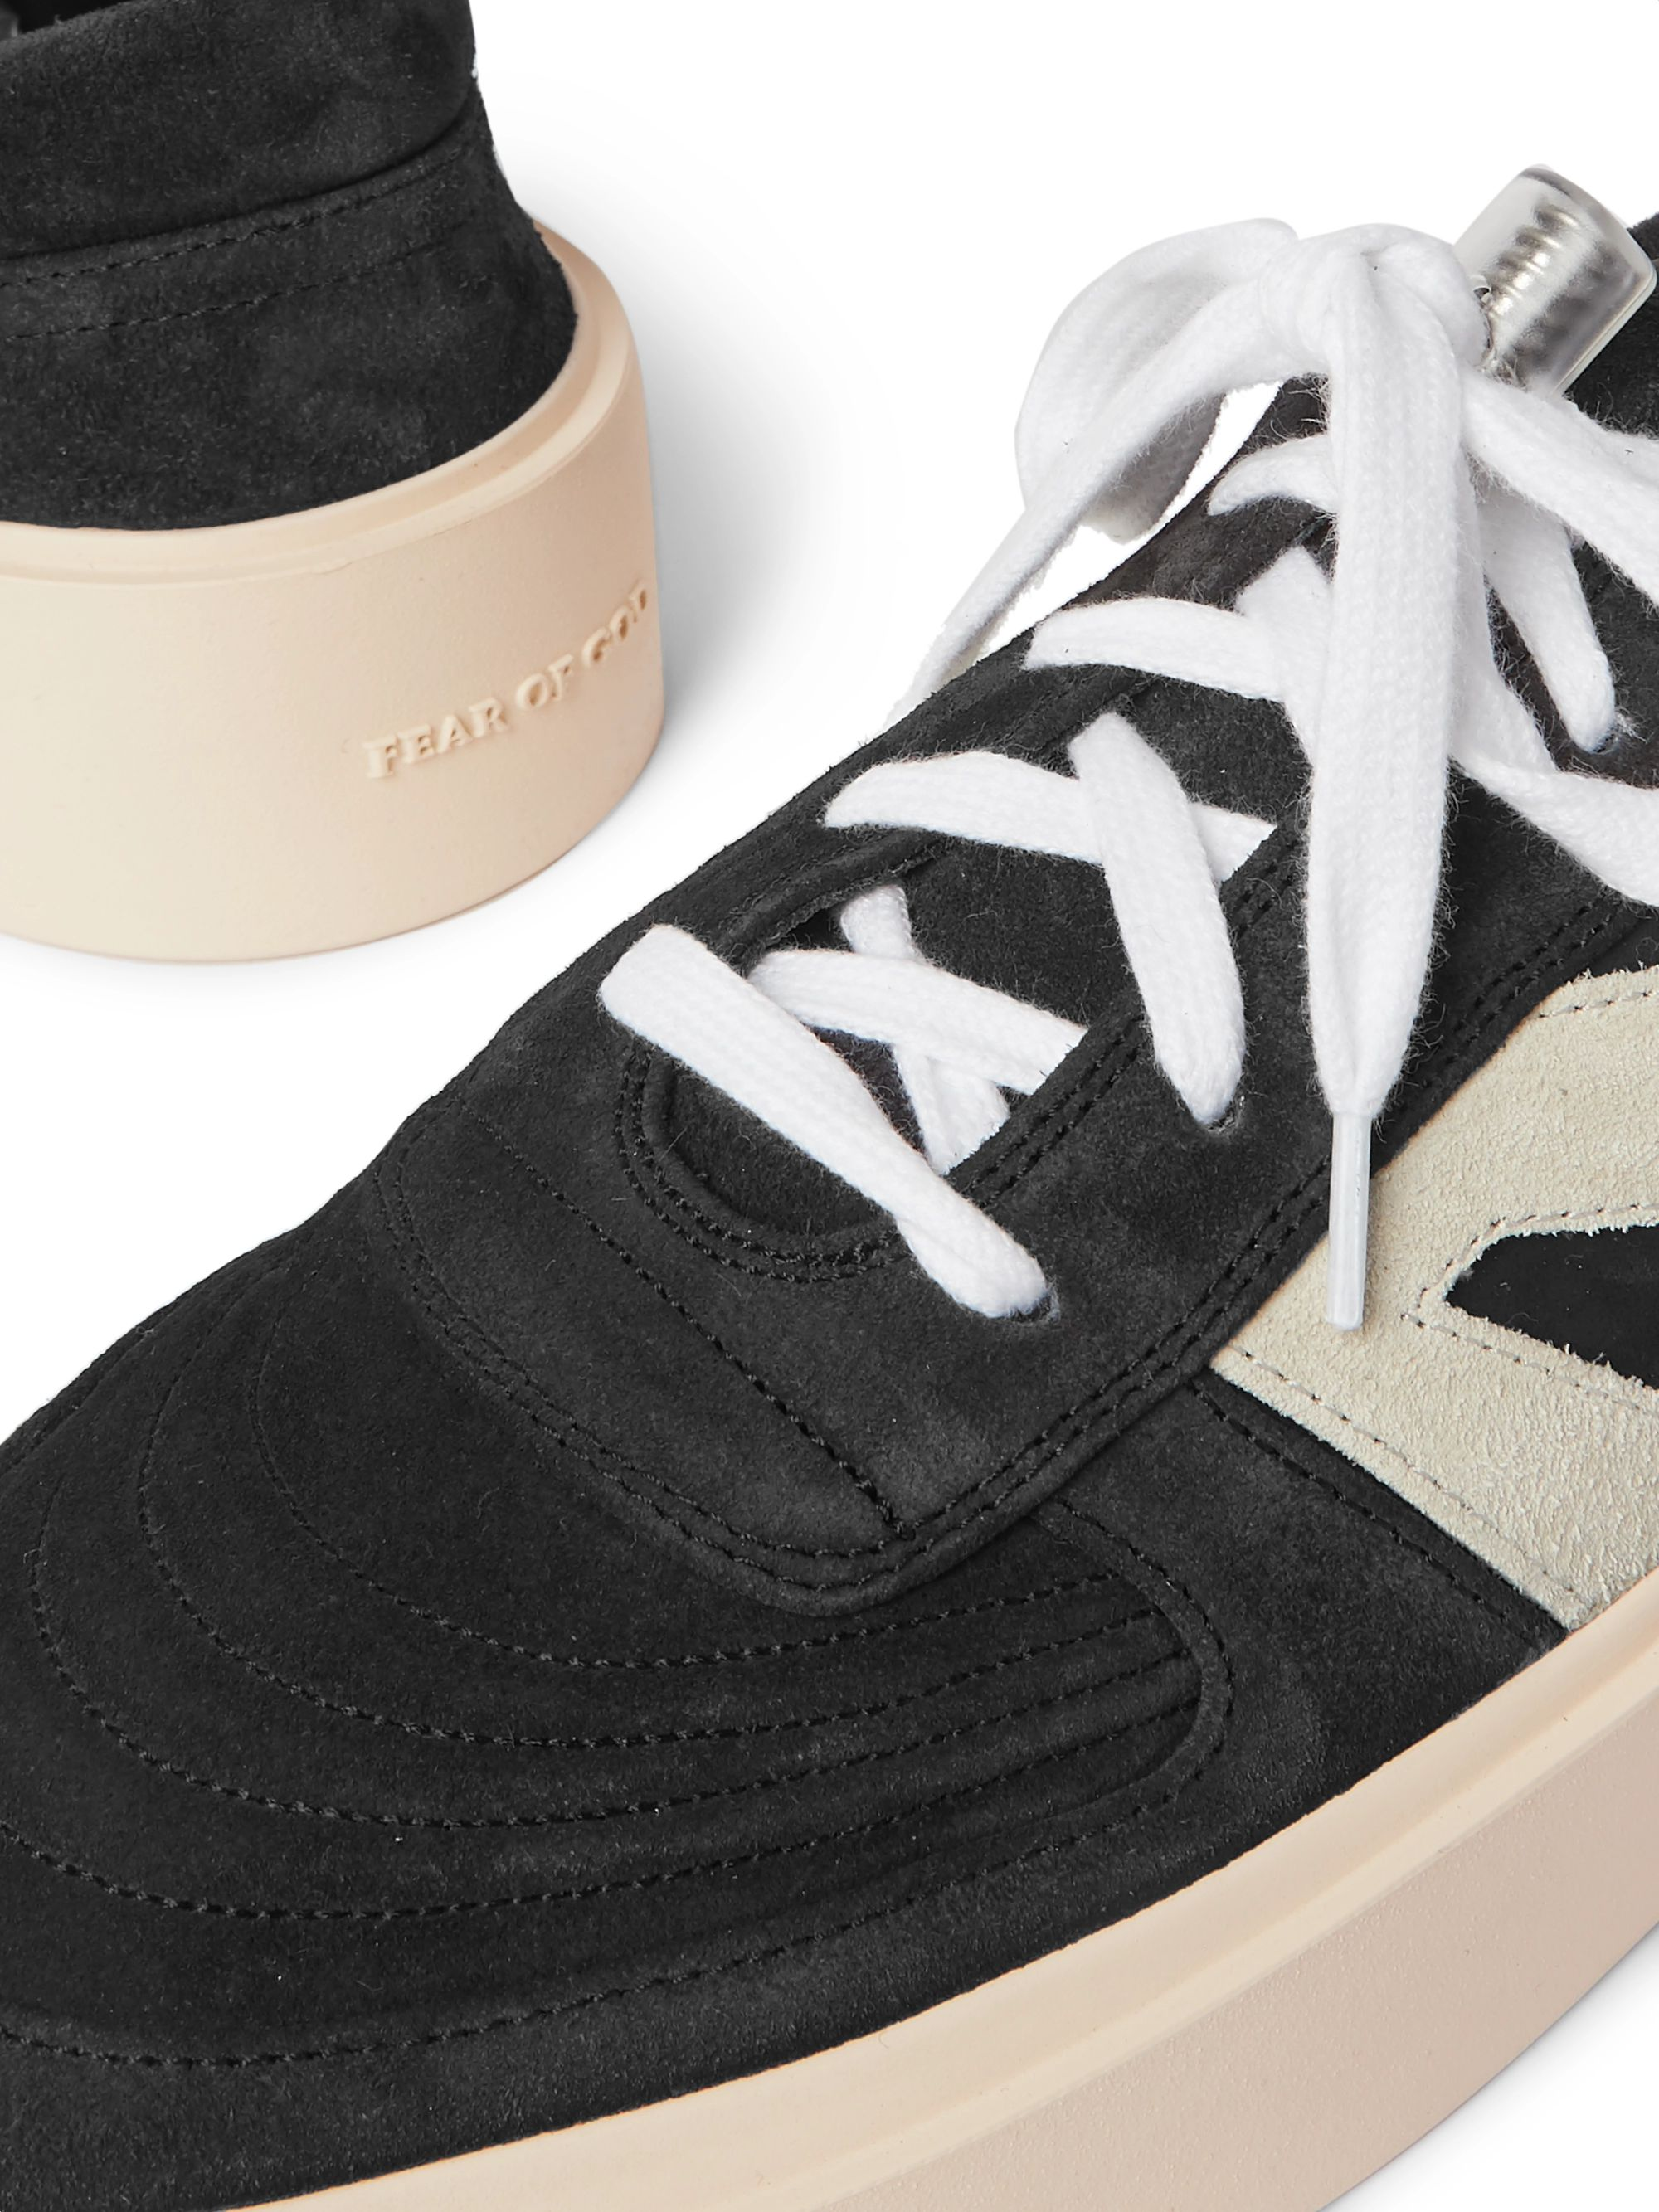 FEAR OF GOD Suede Sneakers